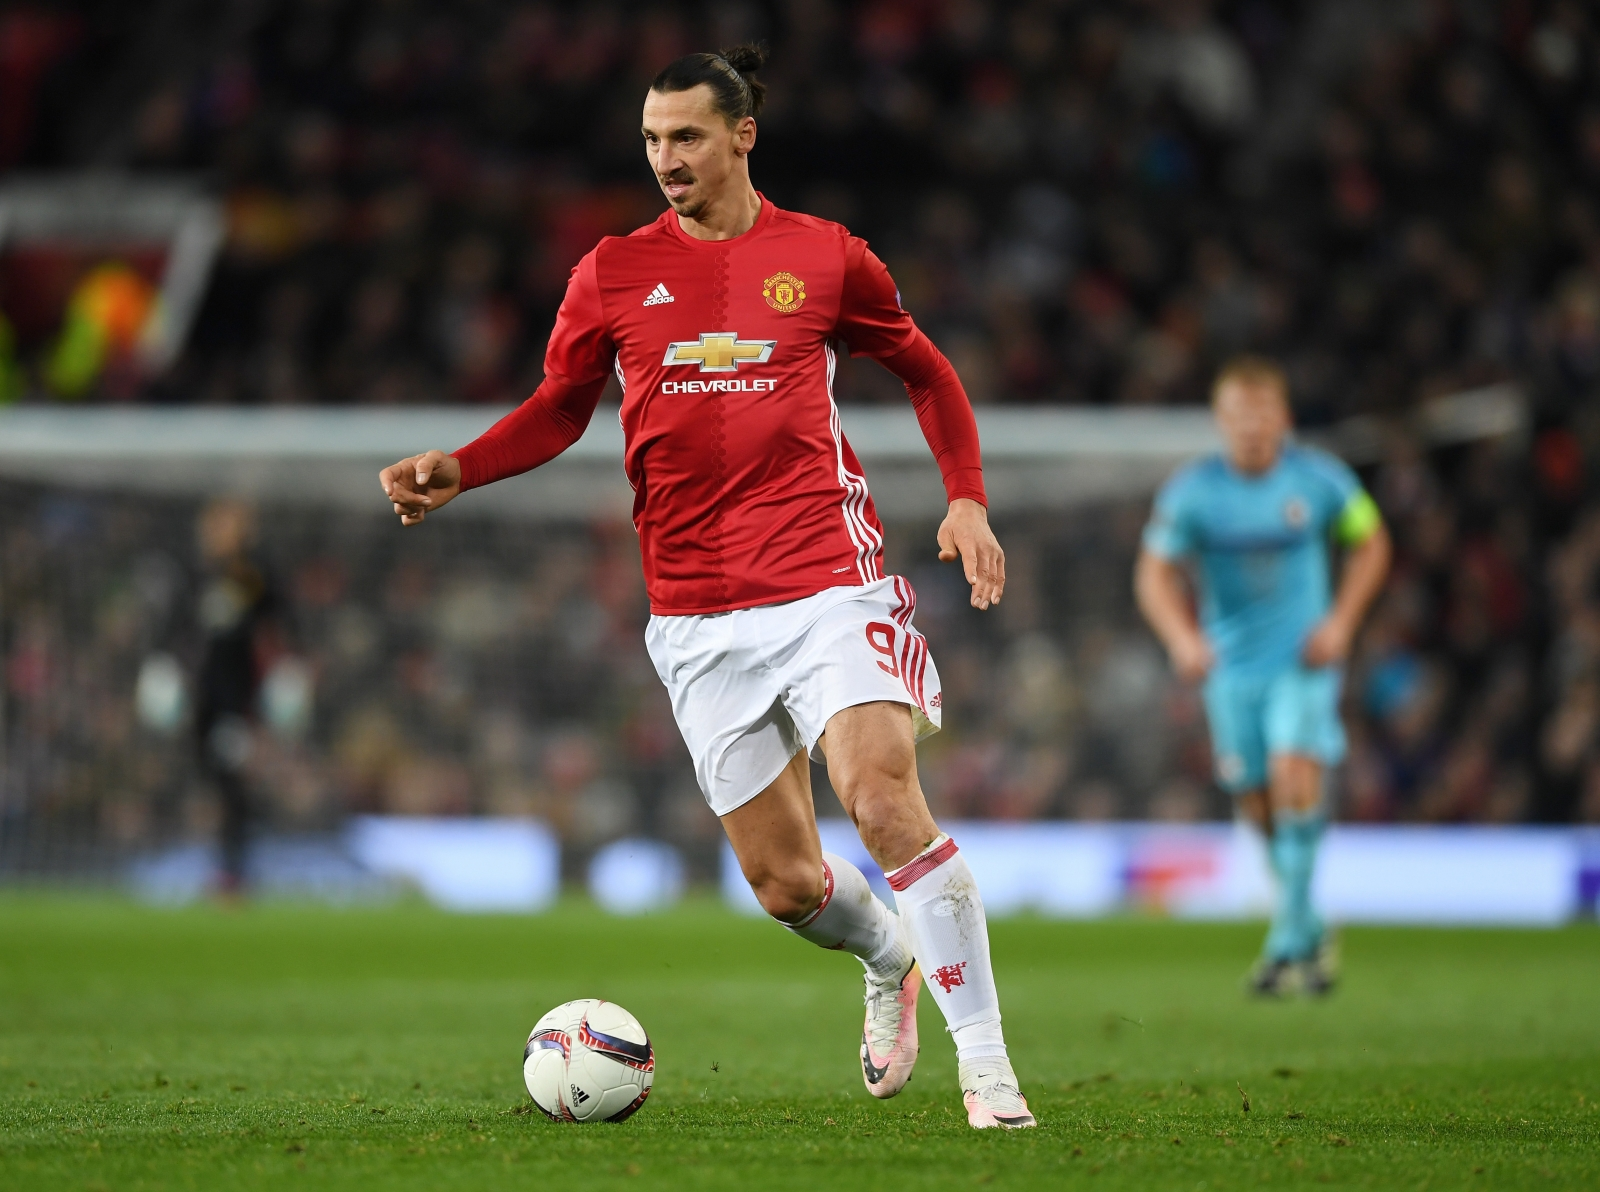 Manchester United news: Zlatan Ibrahimovic sends warning to misfiring